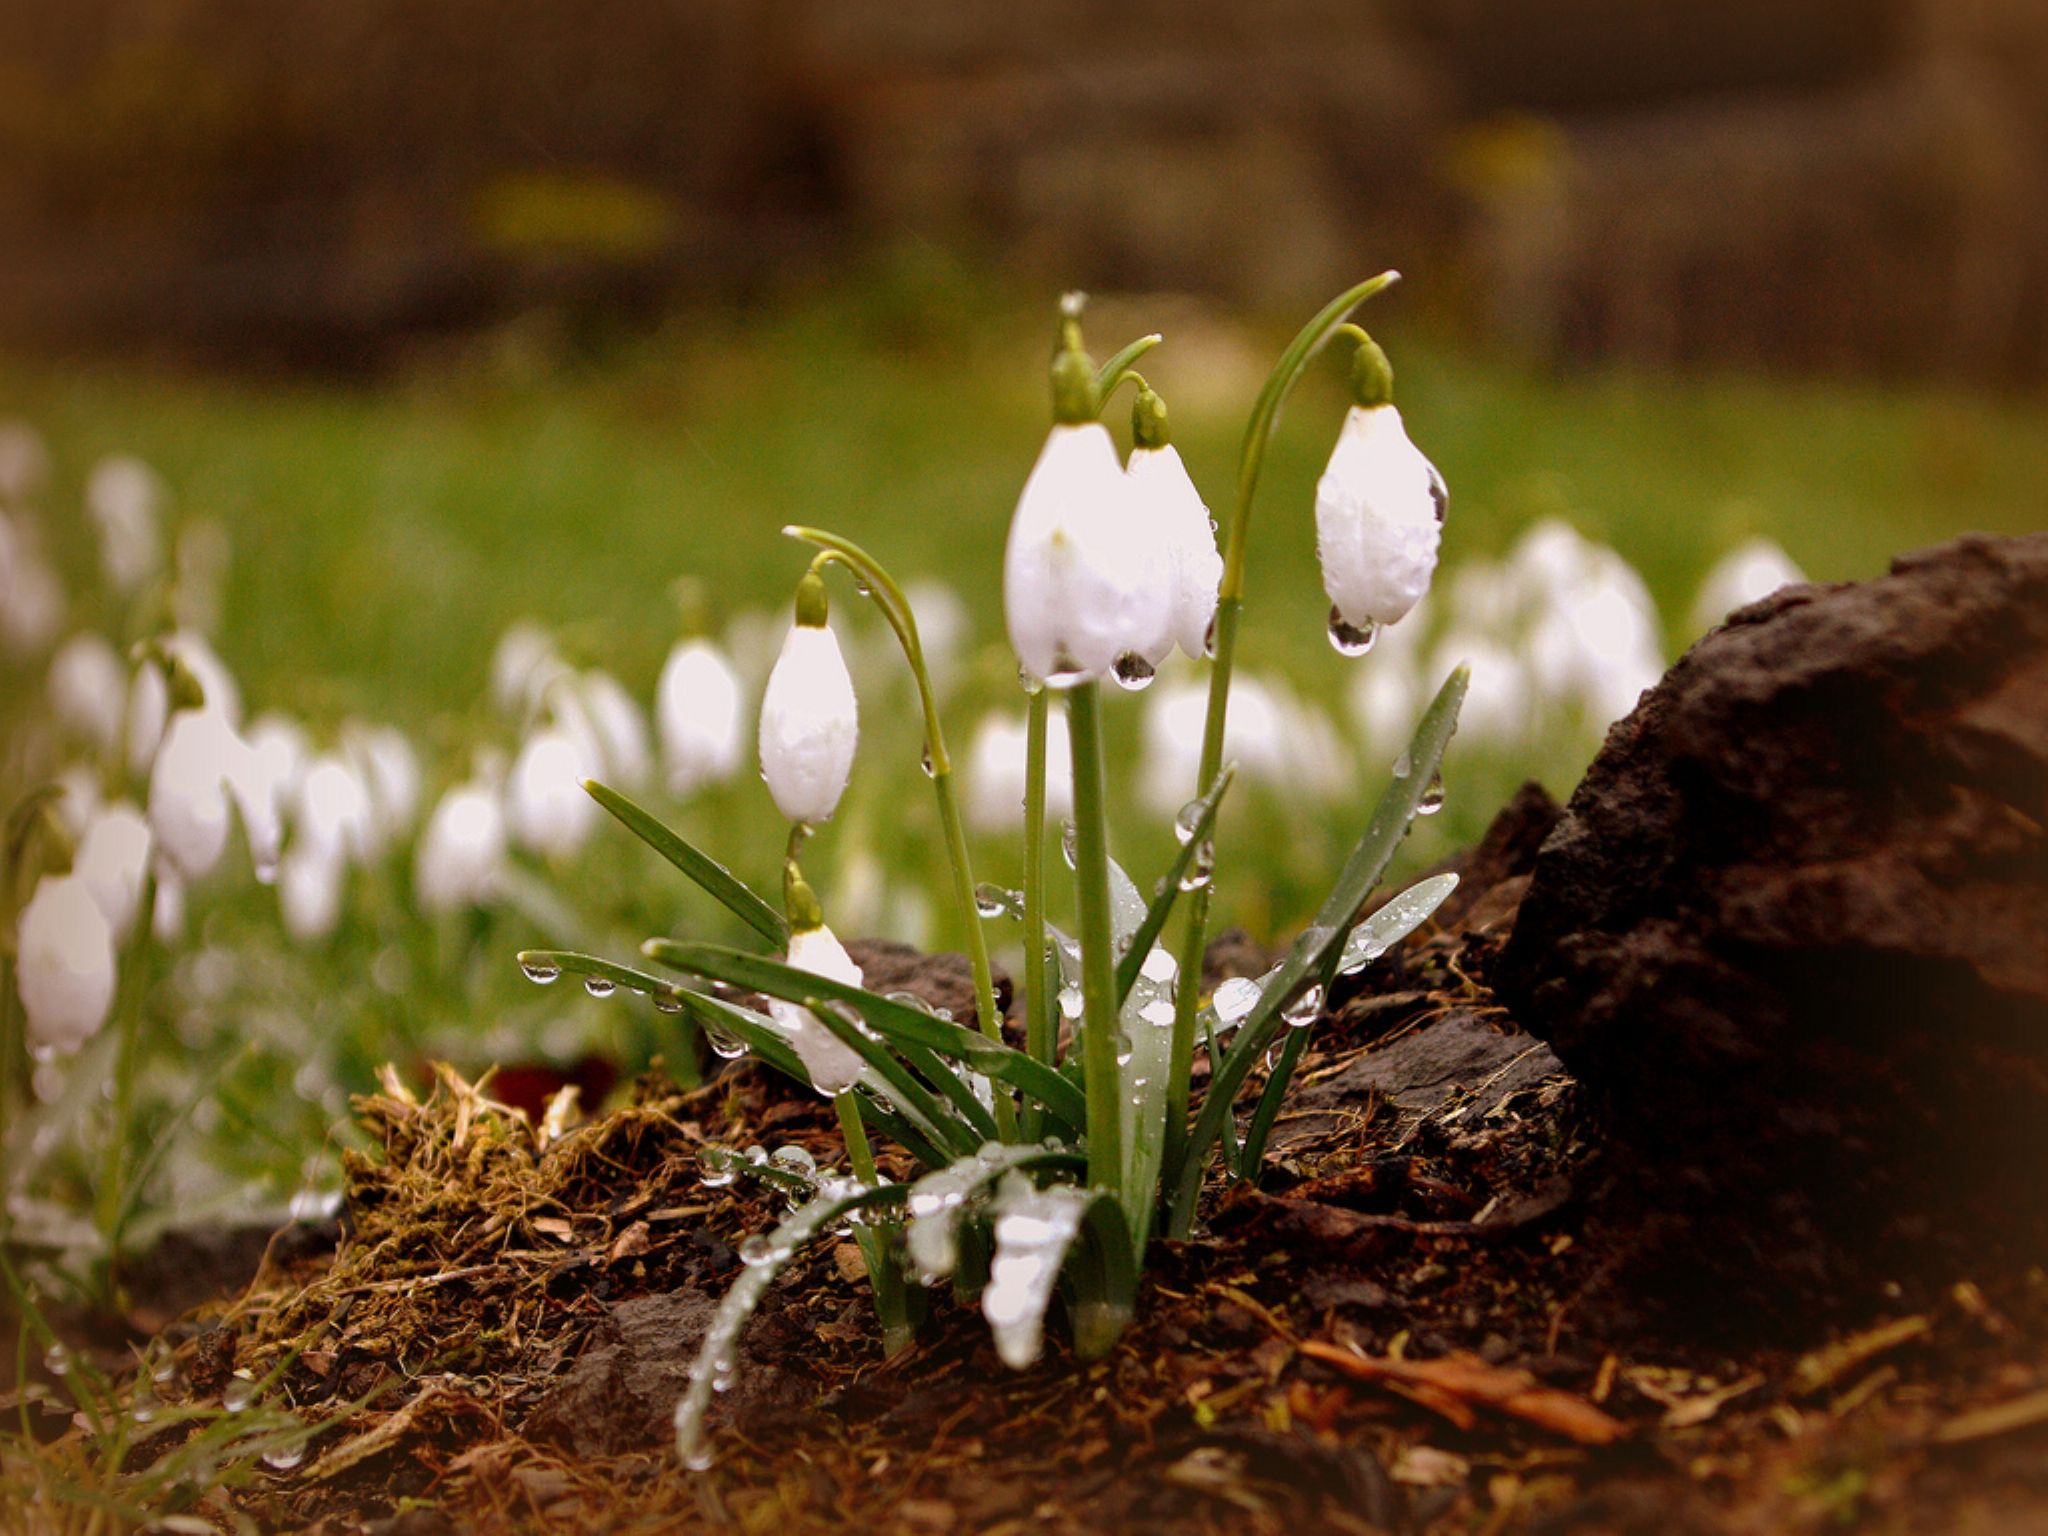 Snowdrops by Bill Guiller